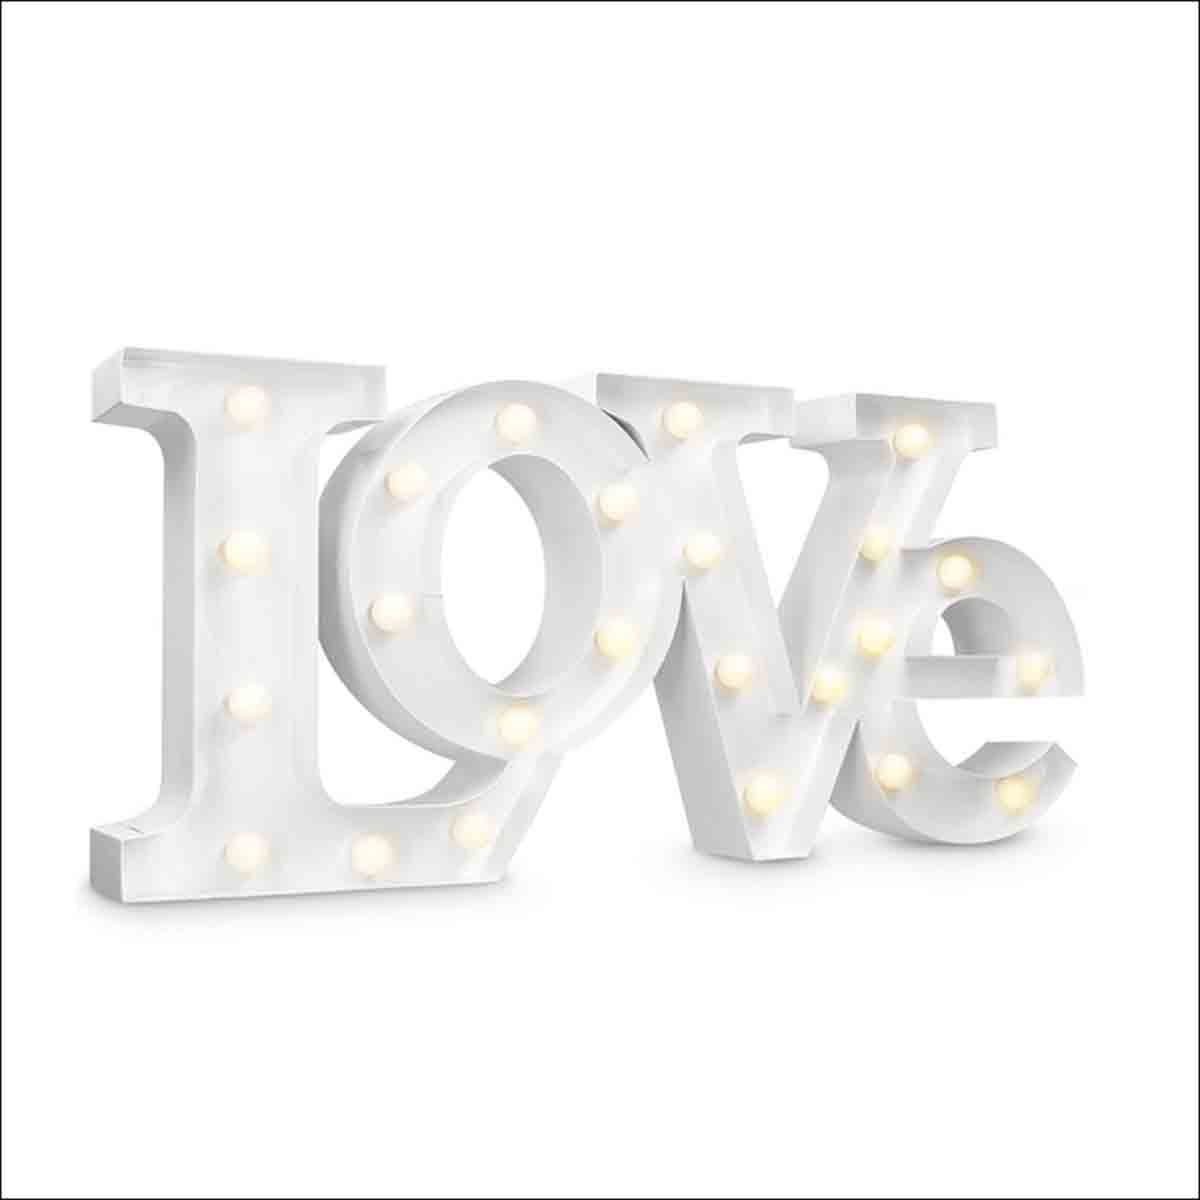 letra love decorativa luminosa